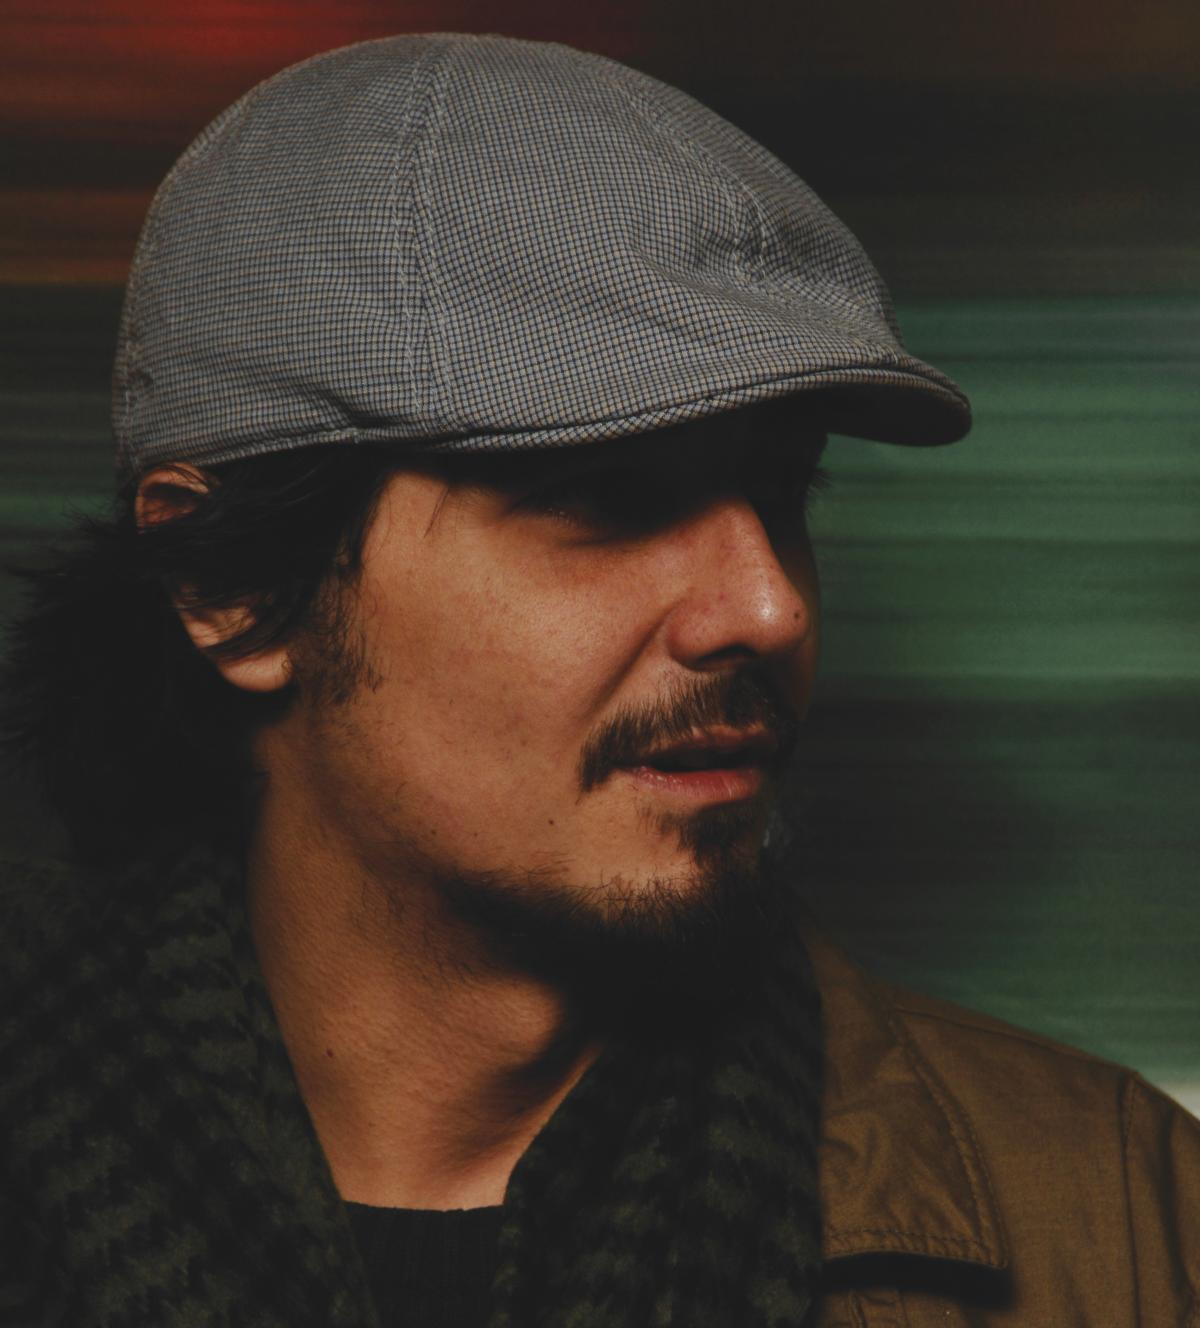 Listen New Amon Tobin Track Remixed By Logos The Wire